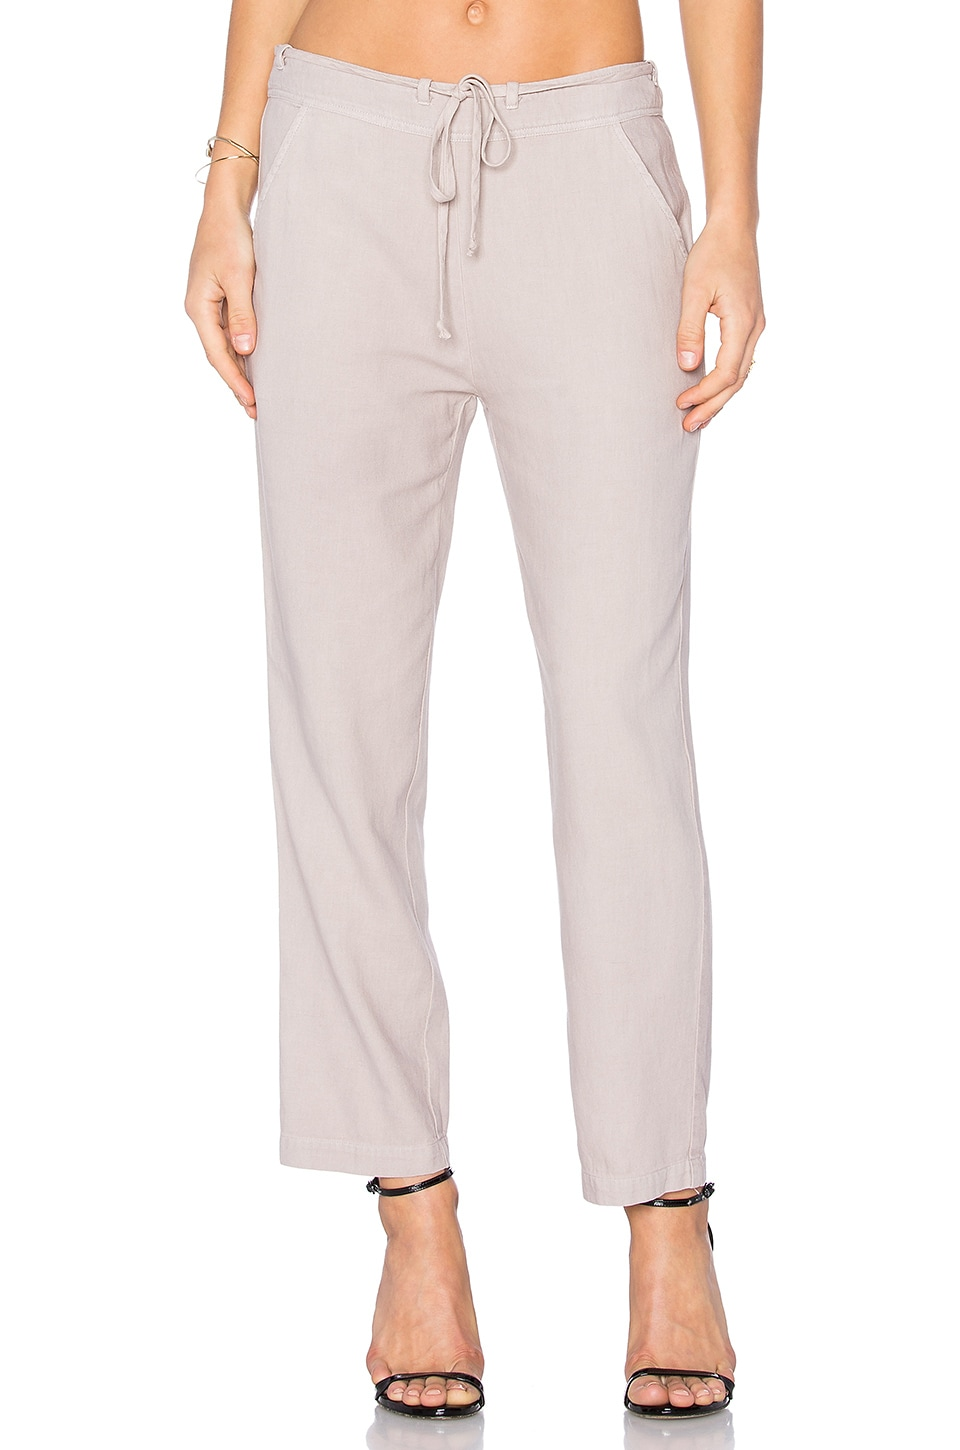 Lounge Pants by York Street